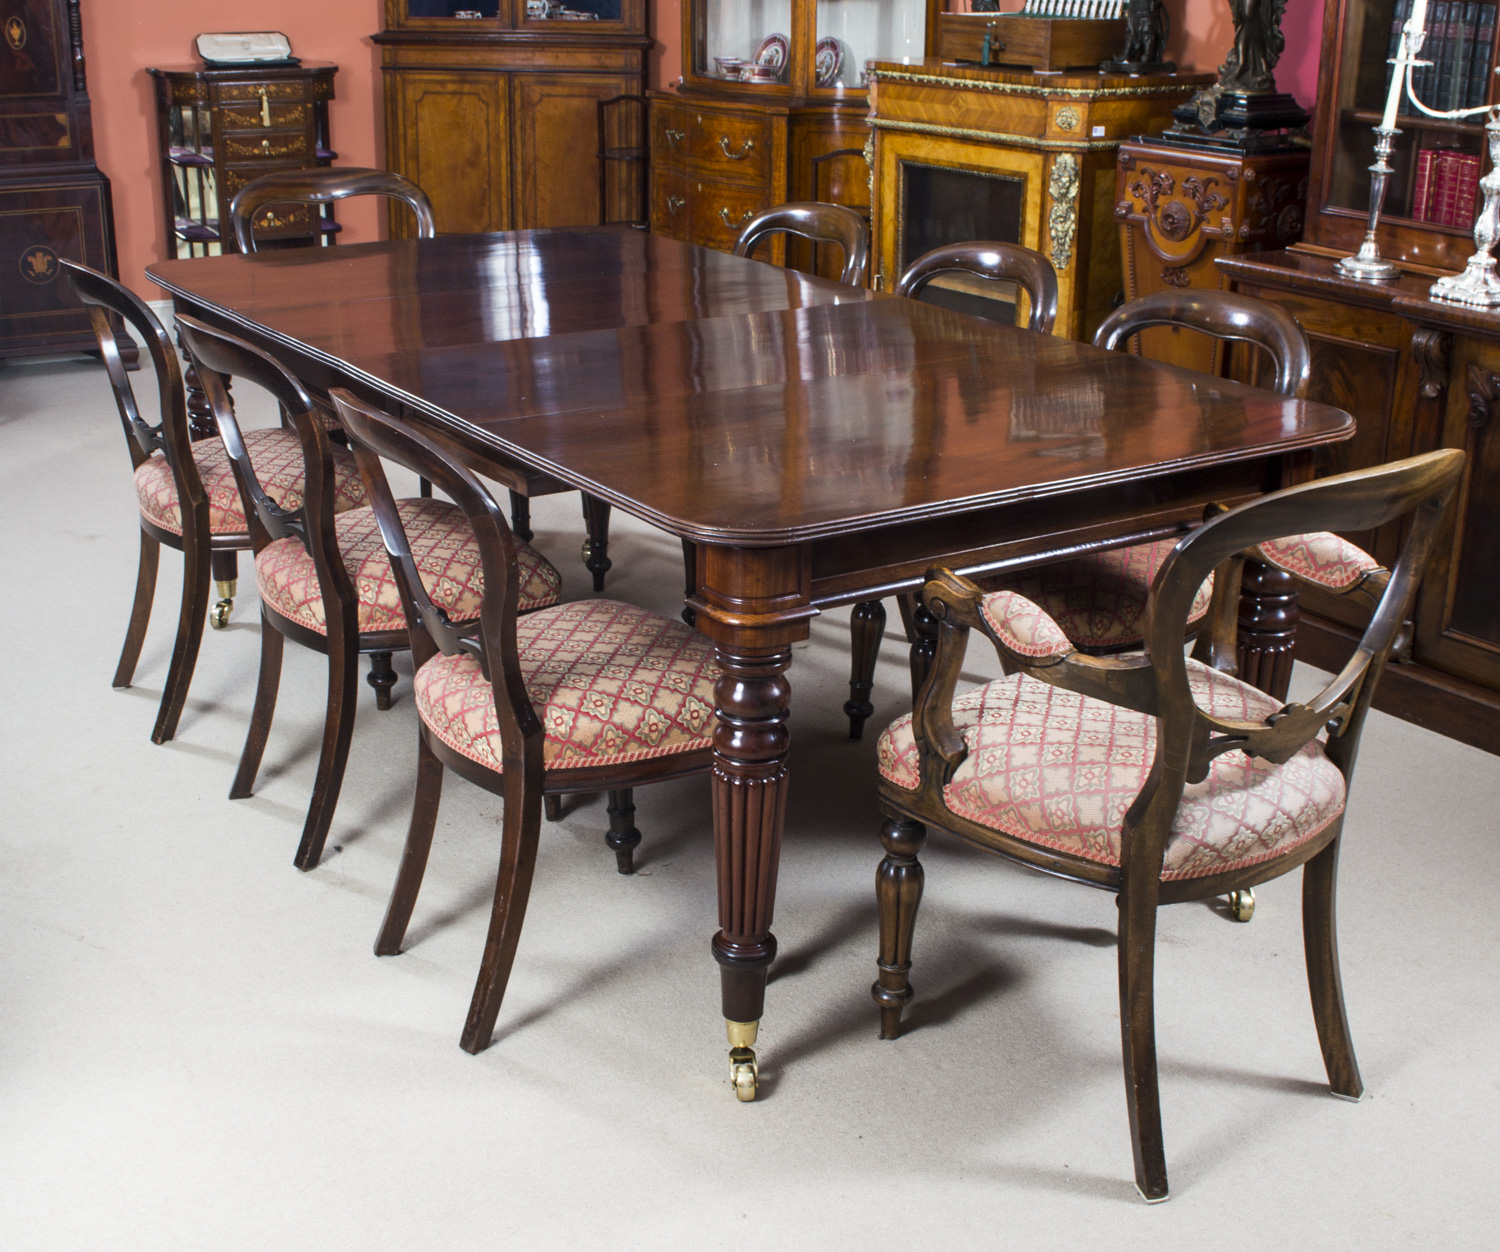 Antique Dining Room Table Chairs: Antique Regency Mahogany